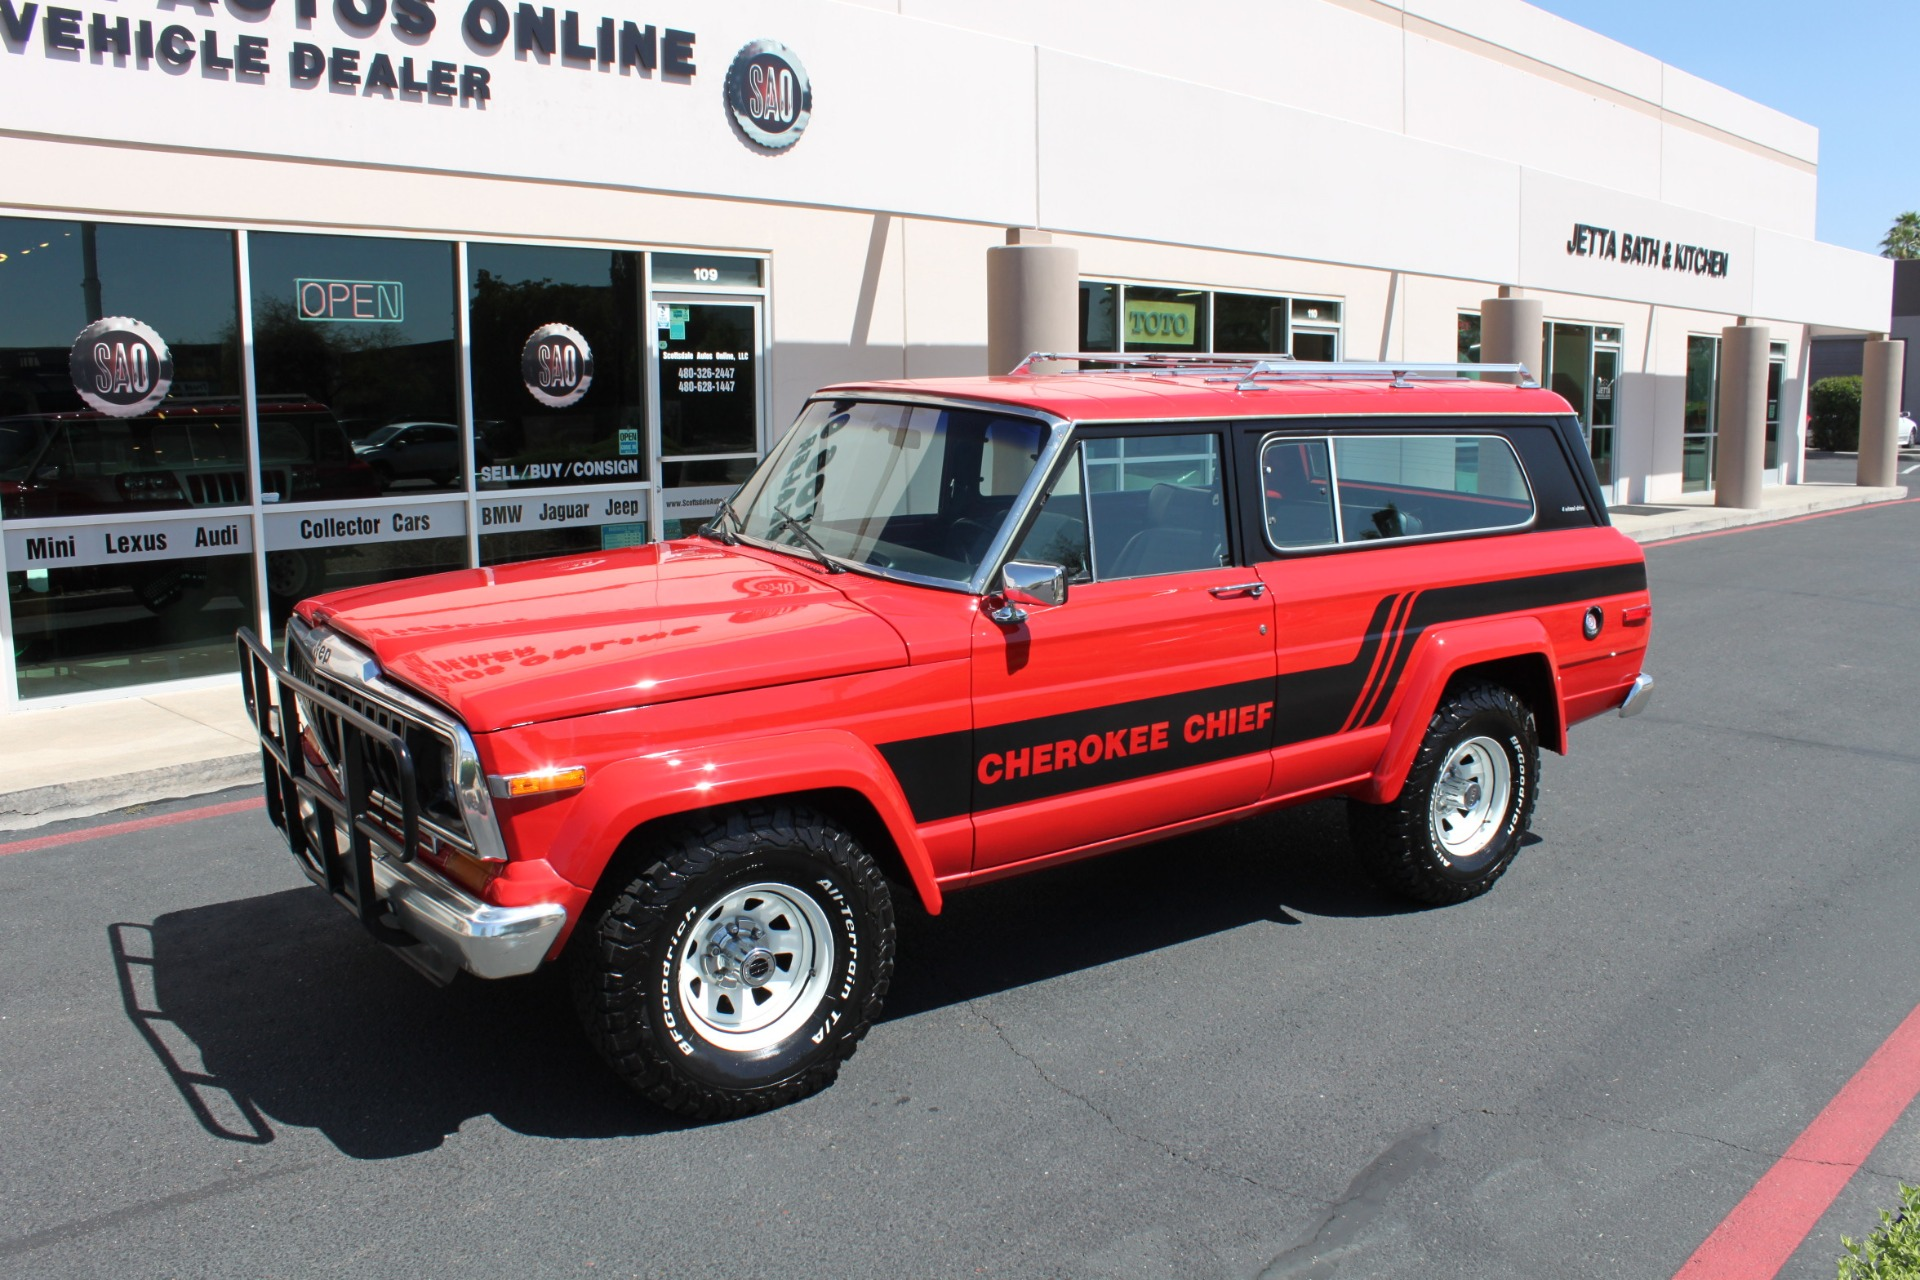 Used-1983-Jeep-Cherokee-Chief-4WD-Acura